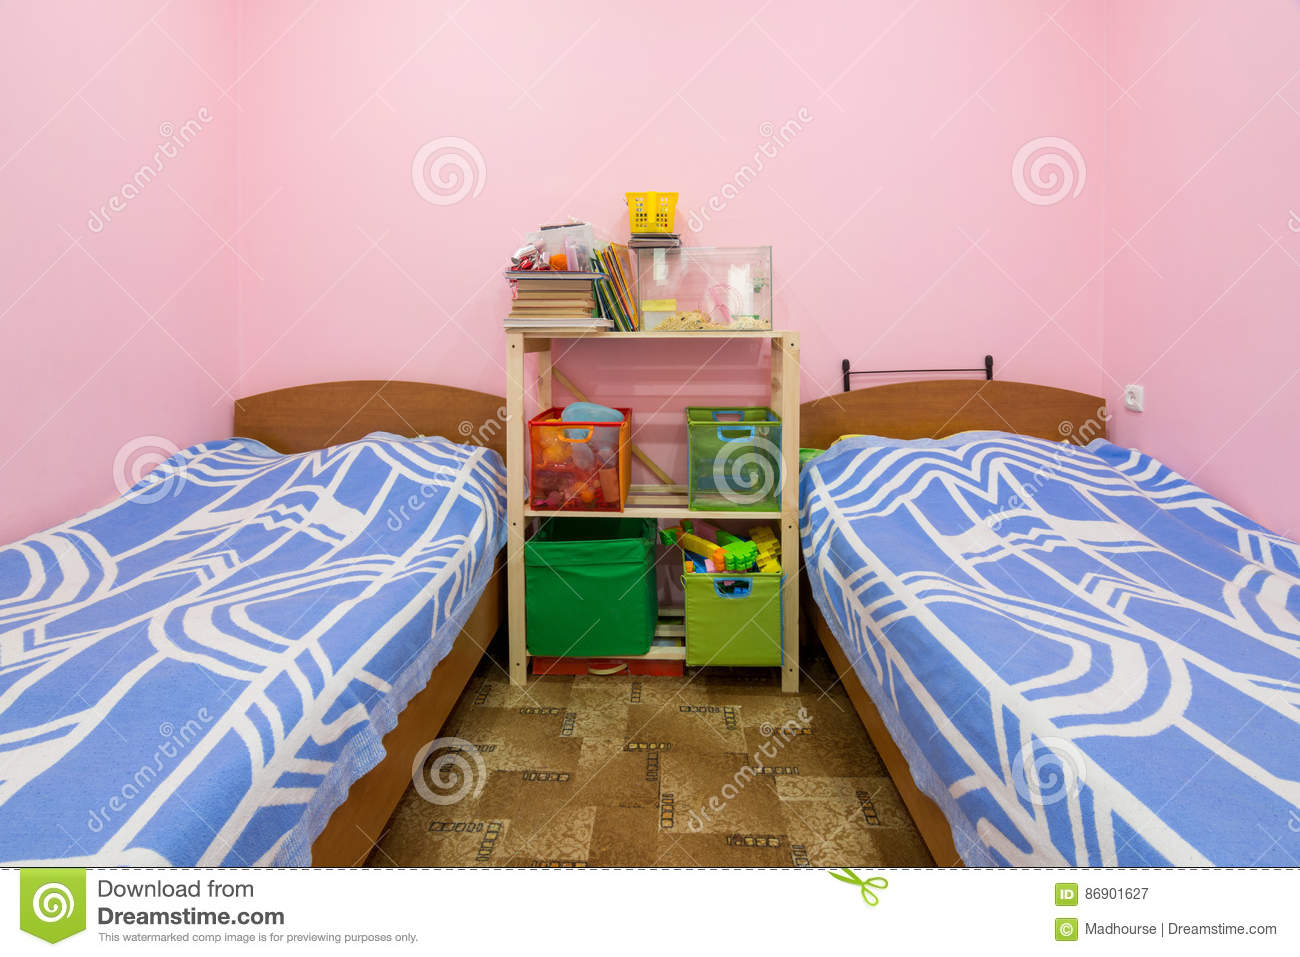 The interior of small dorm room with two beds and a homemade rack in the middle